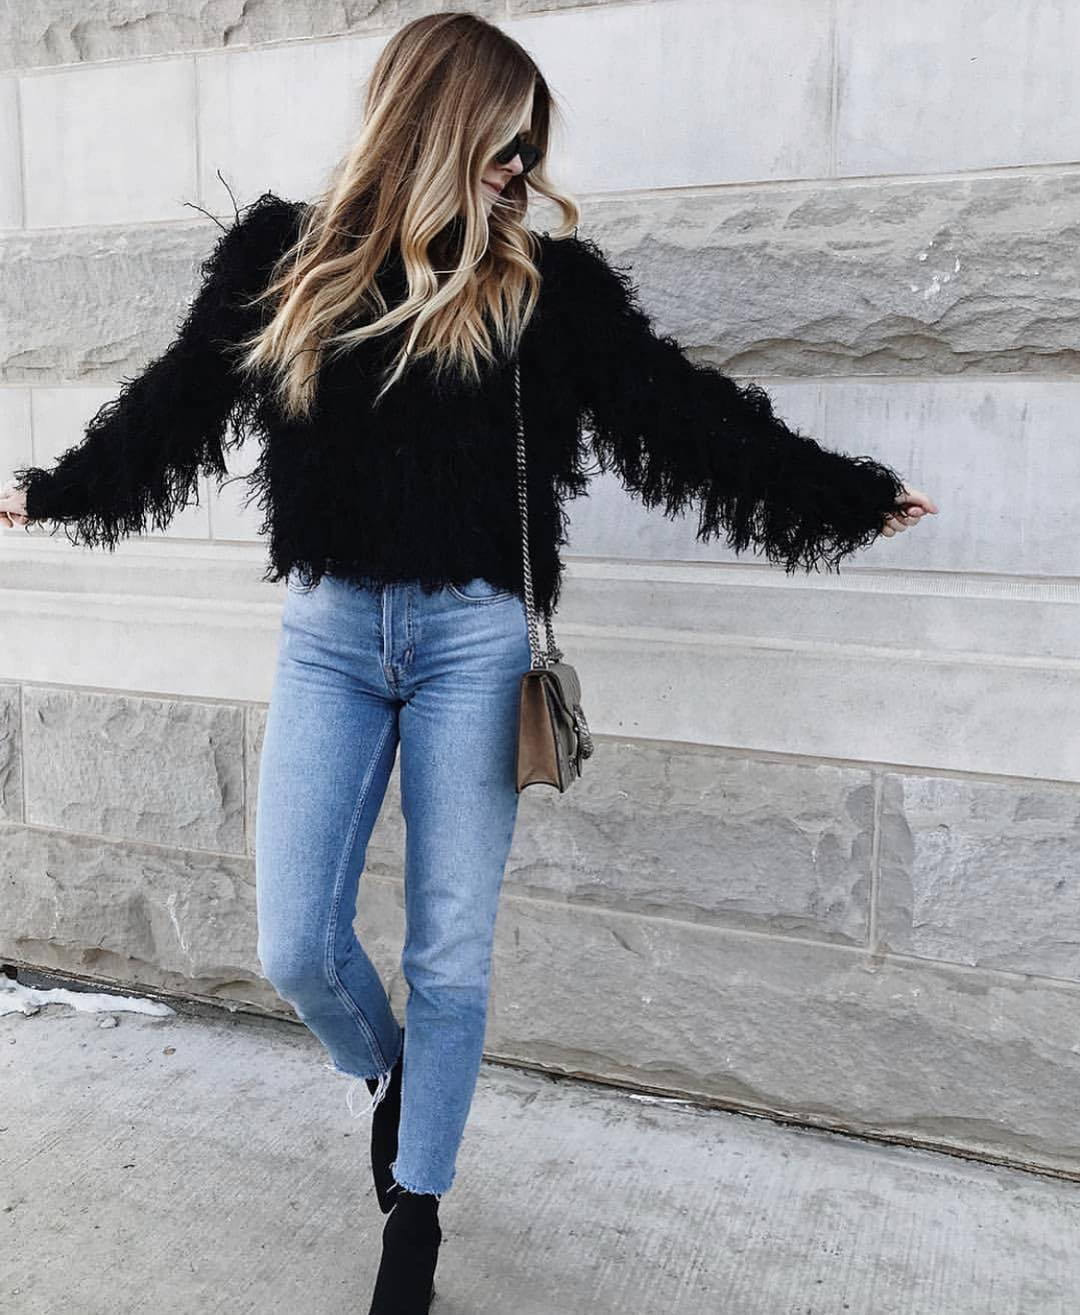 Tassel Jacket In Black With Wash Blue Jeans And Suede Ankle Boots 2019